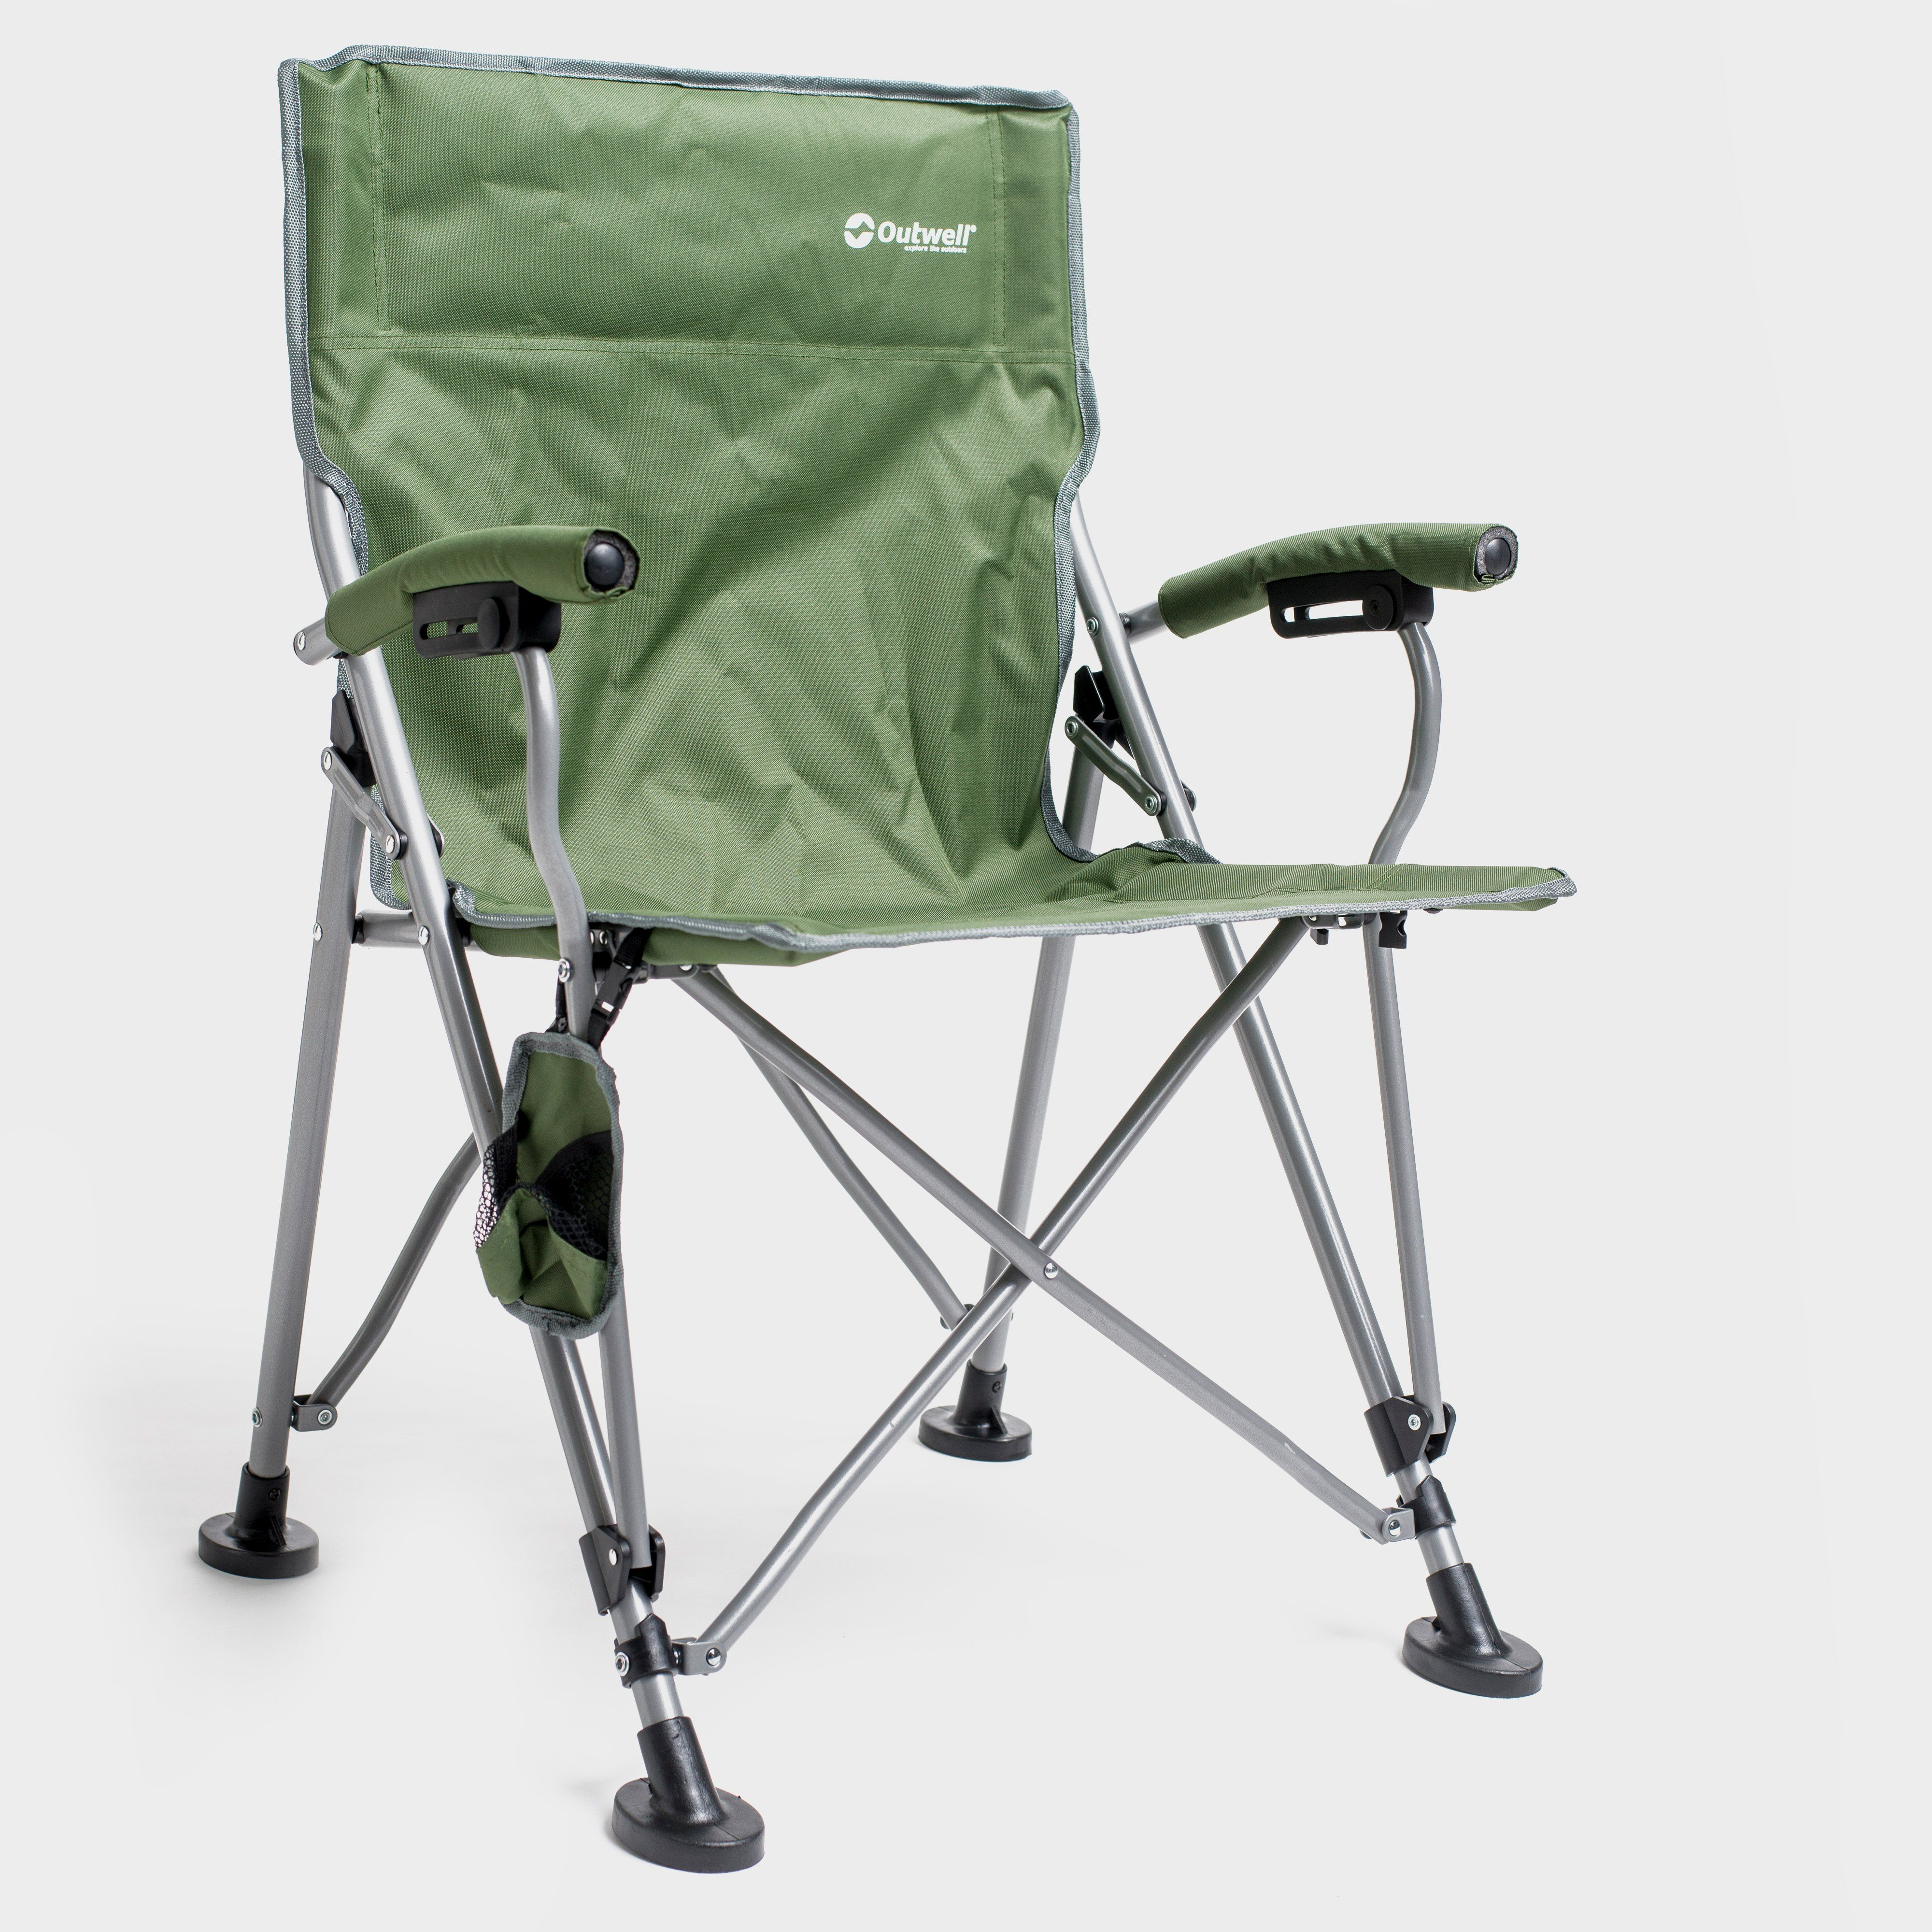 OUTWELL Eston Fold-Away Camping Chair